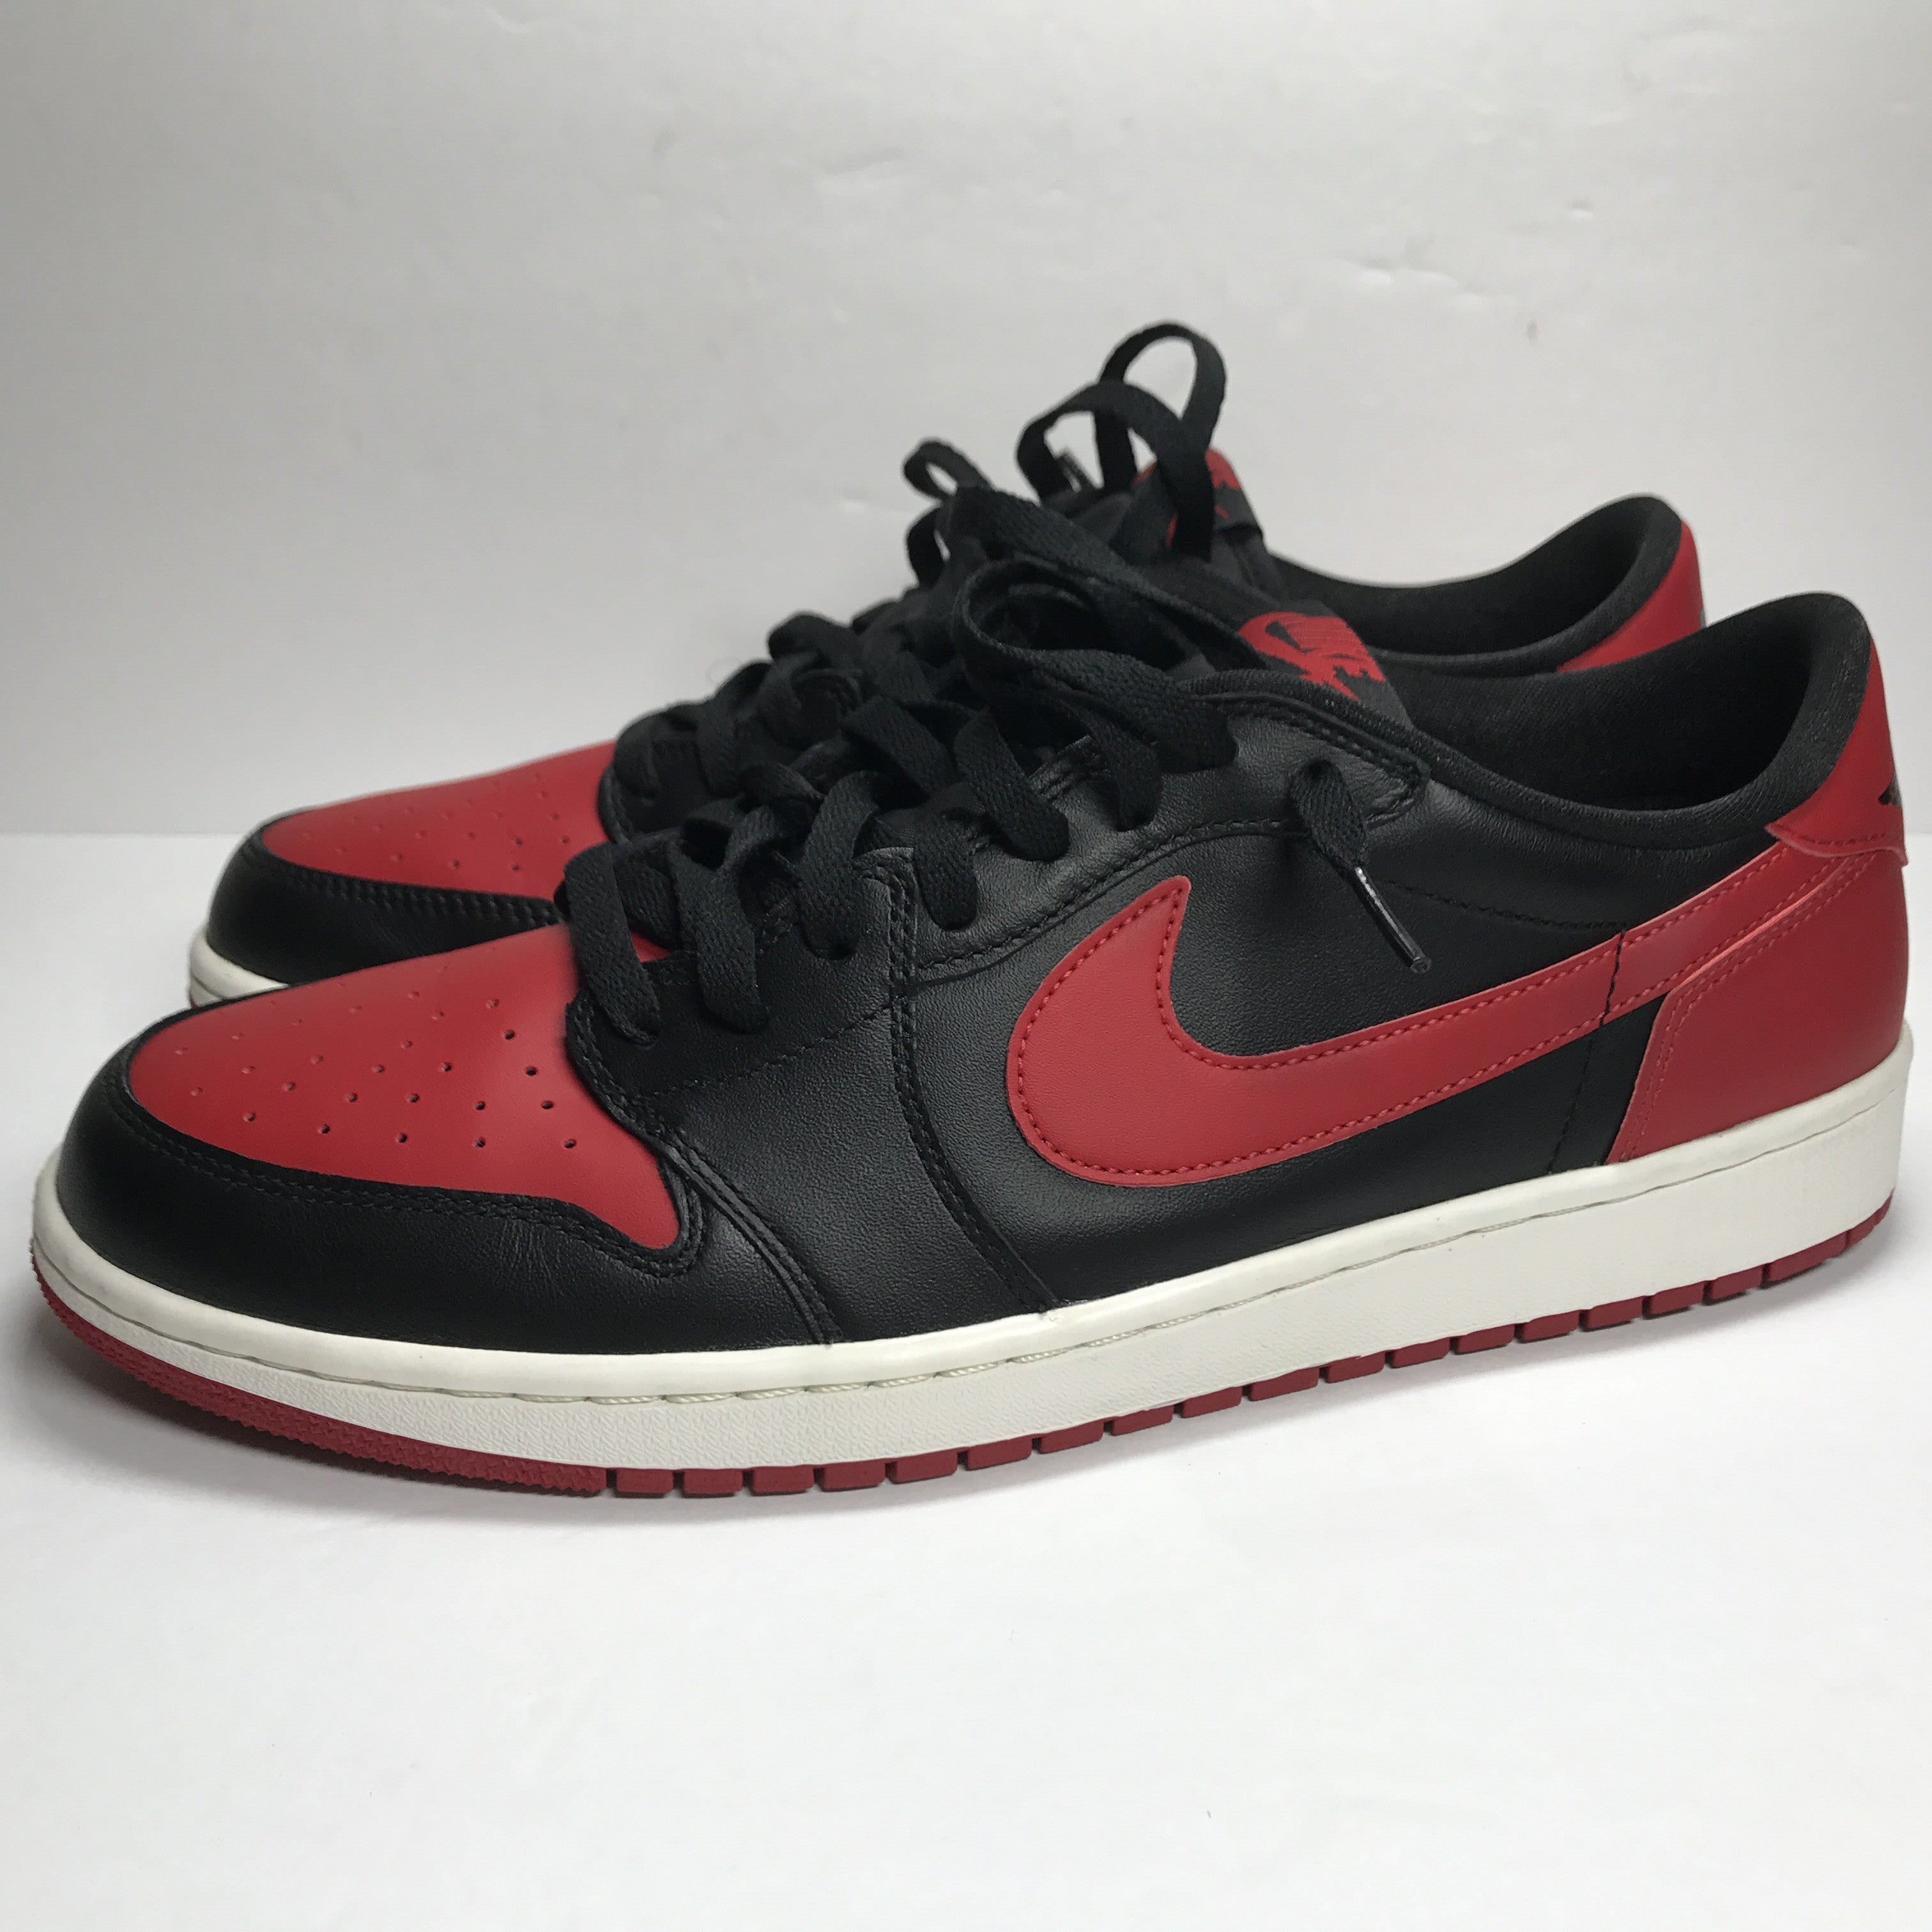 Nike Air Jordan 1 I Retro Low OG Bred Size 13